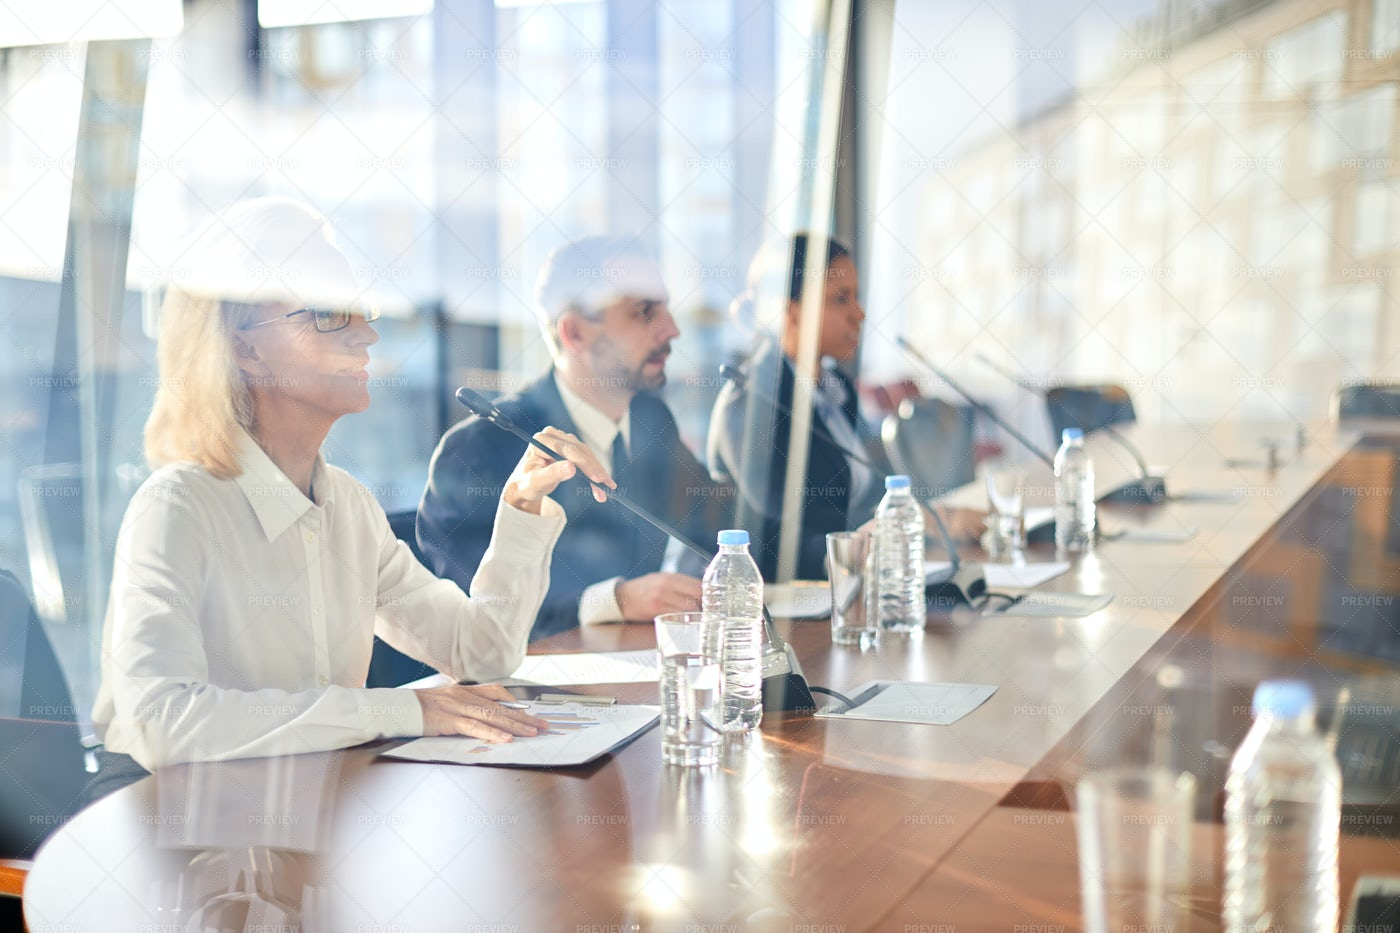 Speakers At Business Conference: Stock Photos